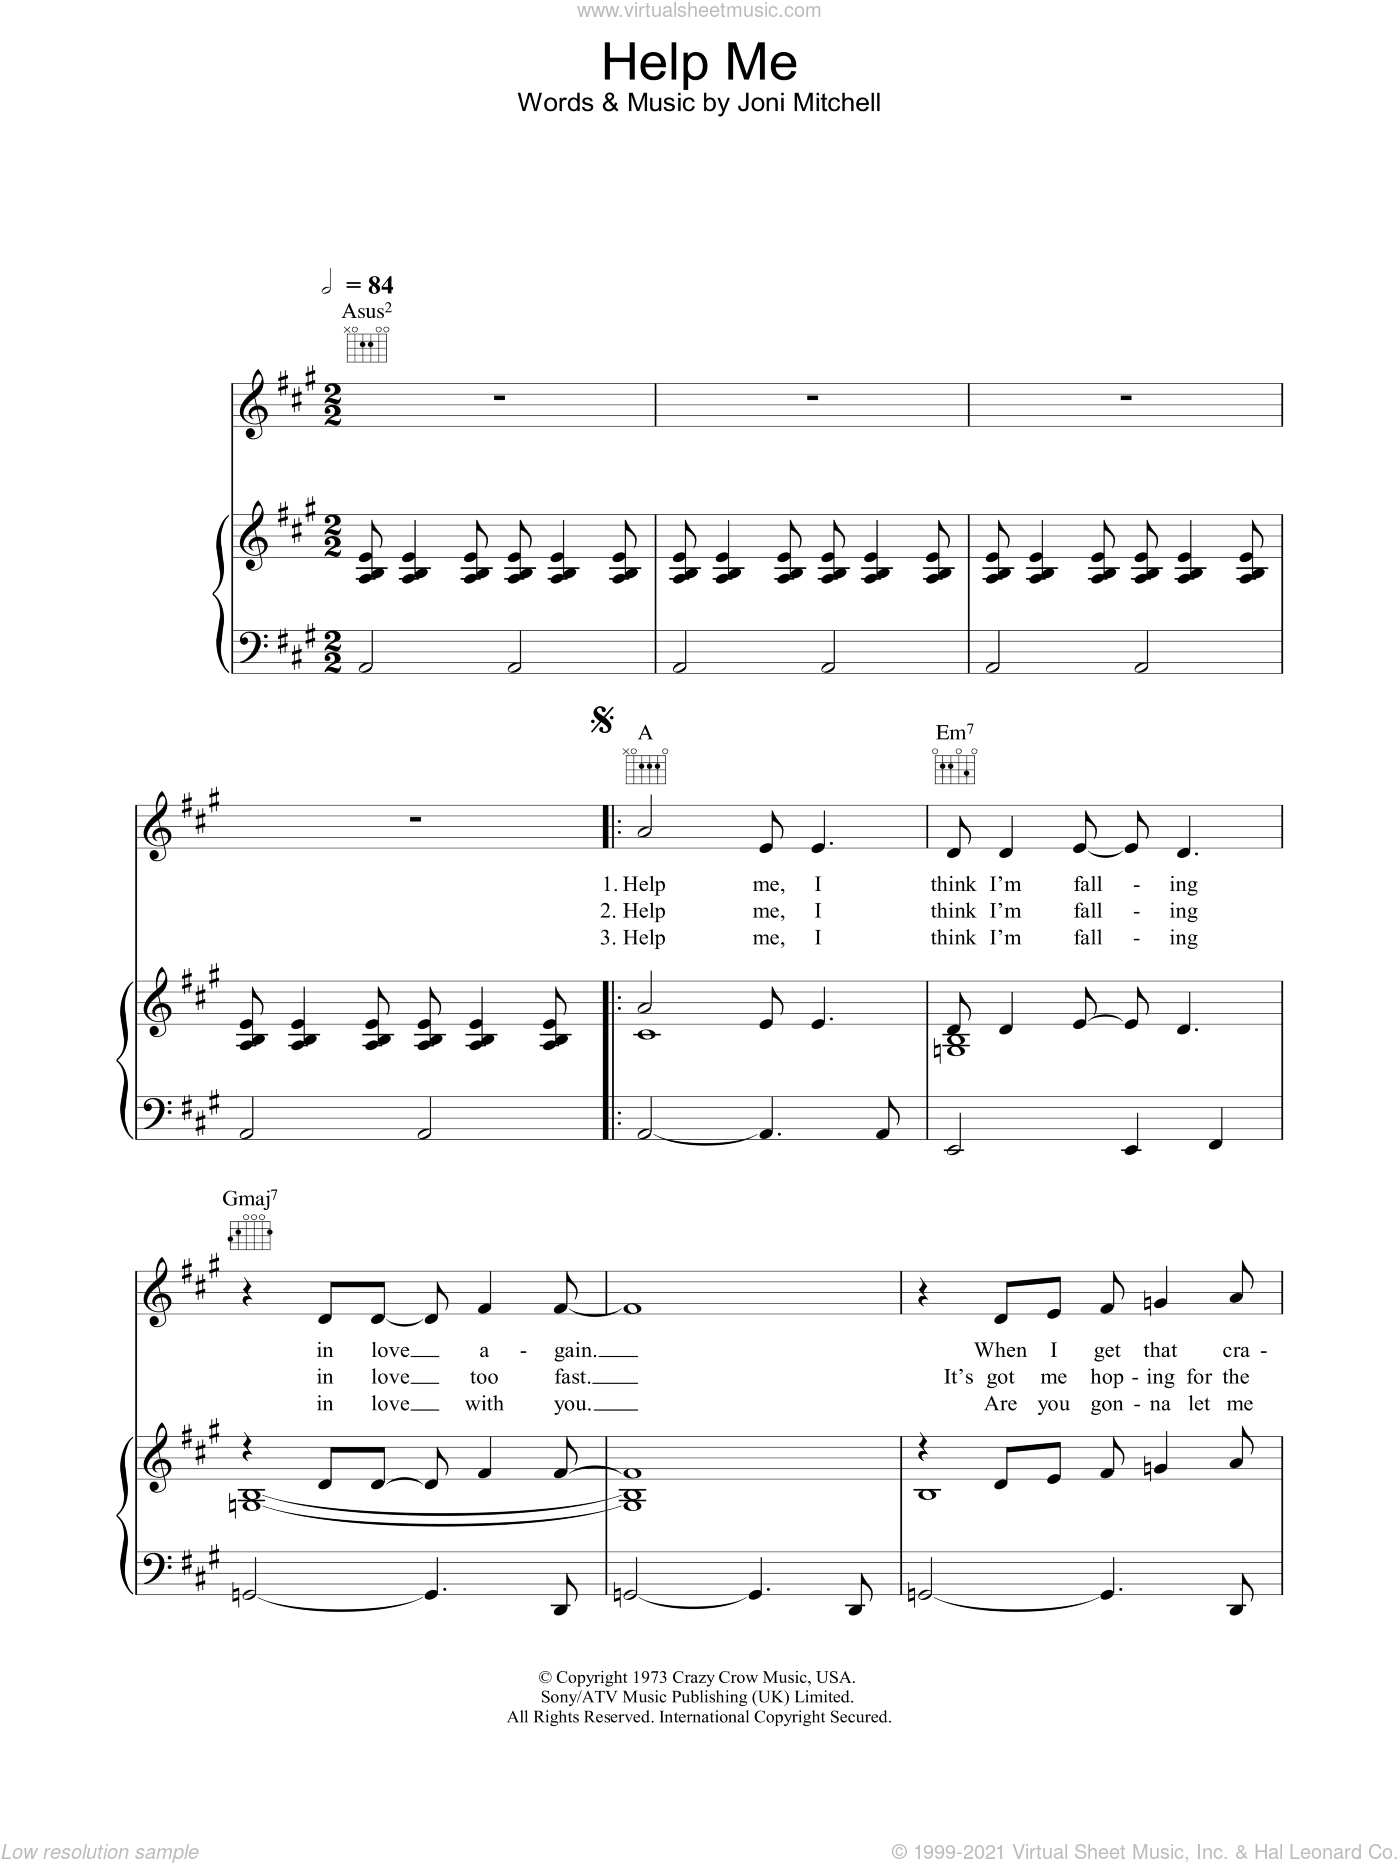 Help Me sheet music for voice, piano or guitar by Joni Mitchell. Score Image Preview.